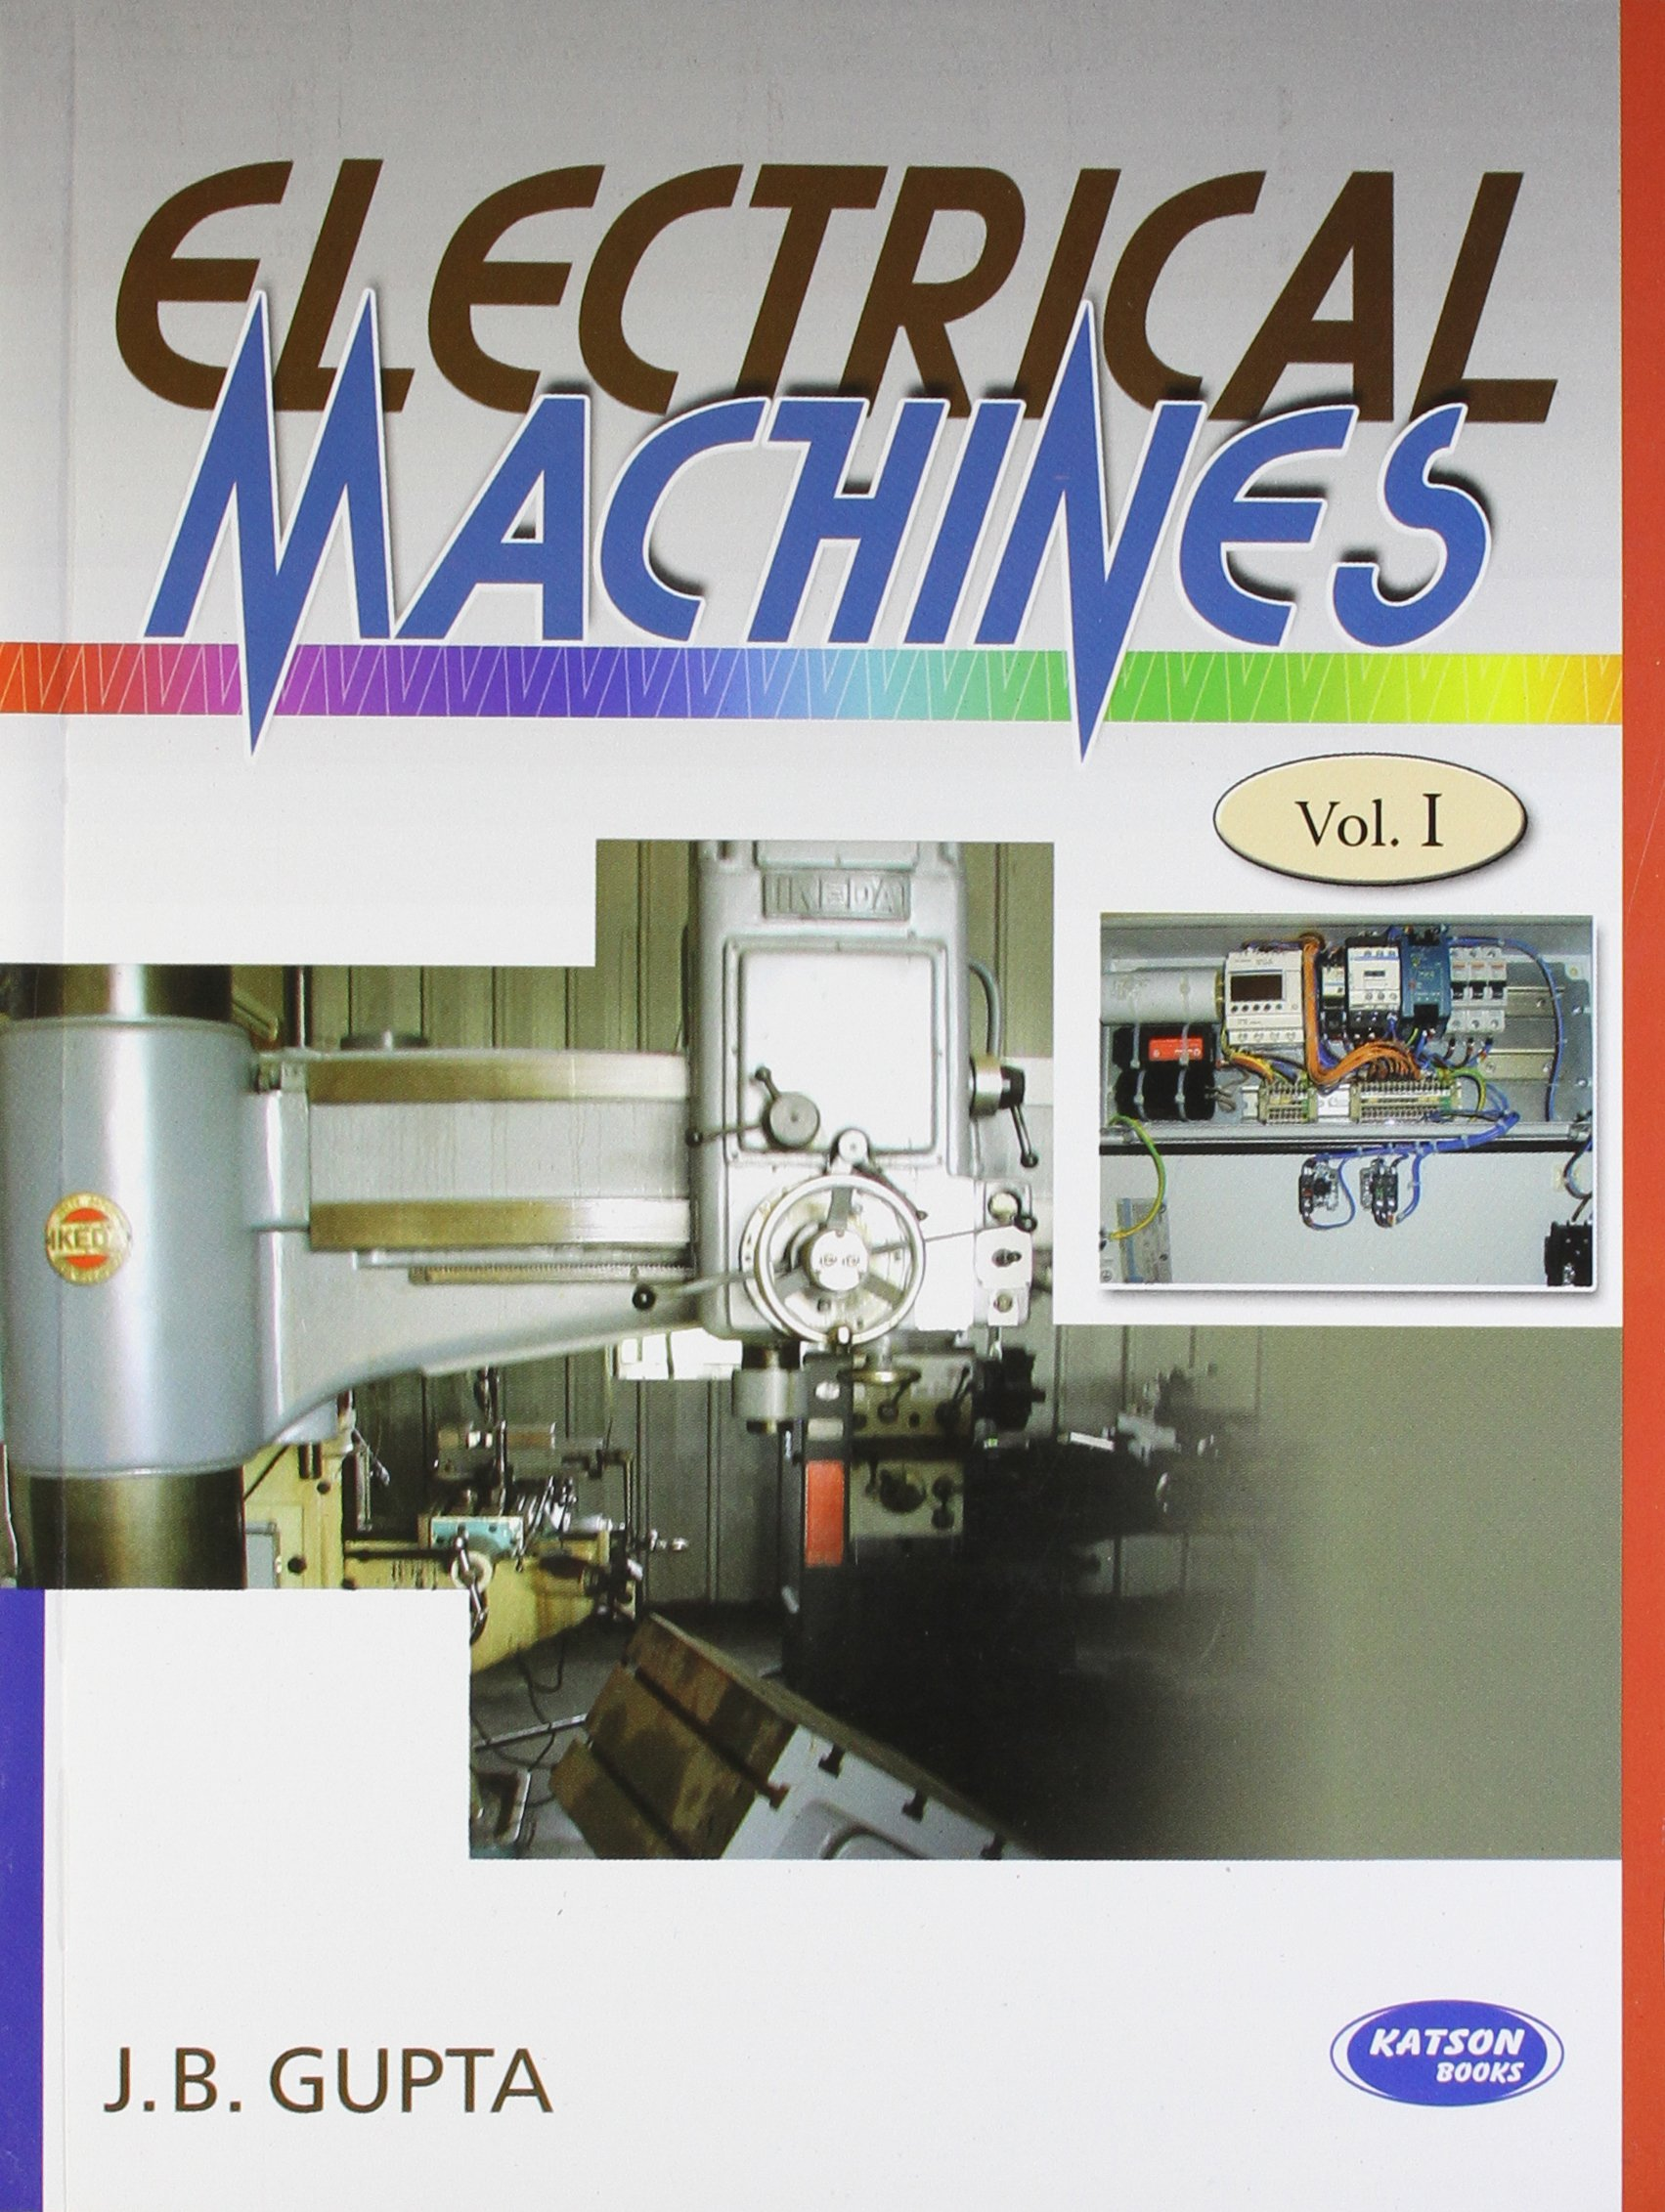 Buy Electrical Machines Vol 1 Book Online At Low Prices In India Electronic Circuit By Jb Gupta Reviews Ratings